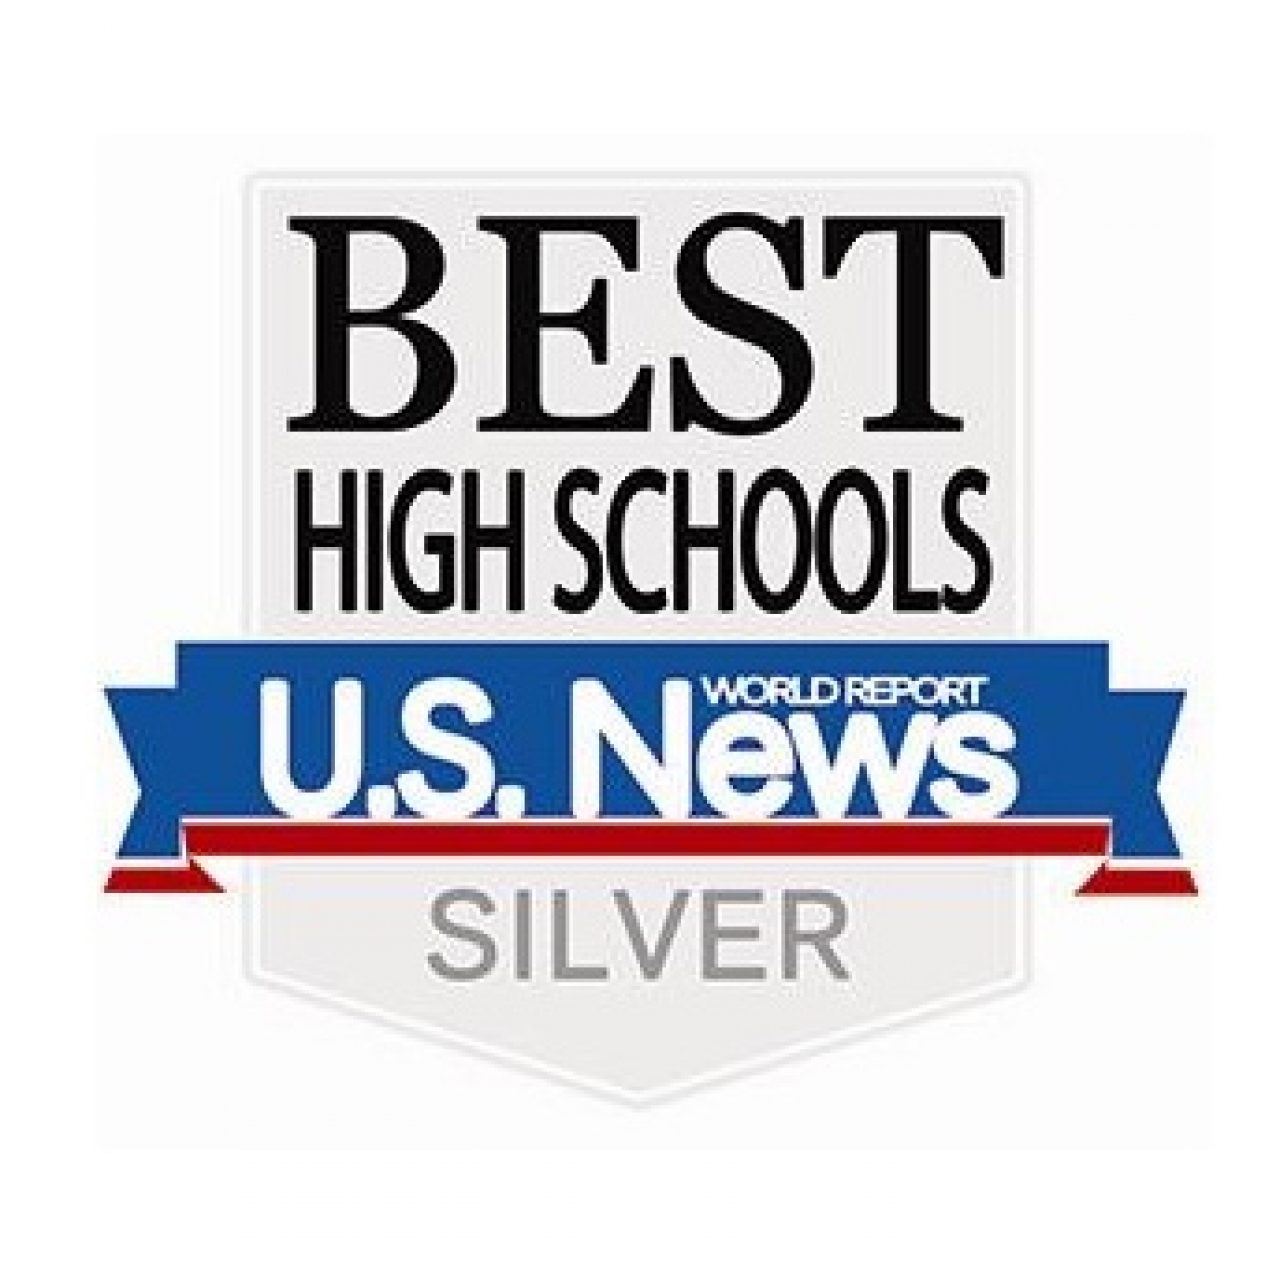 U.S. News & World Report Best High Schools Silver Award